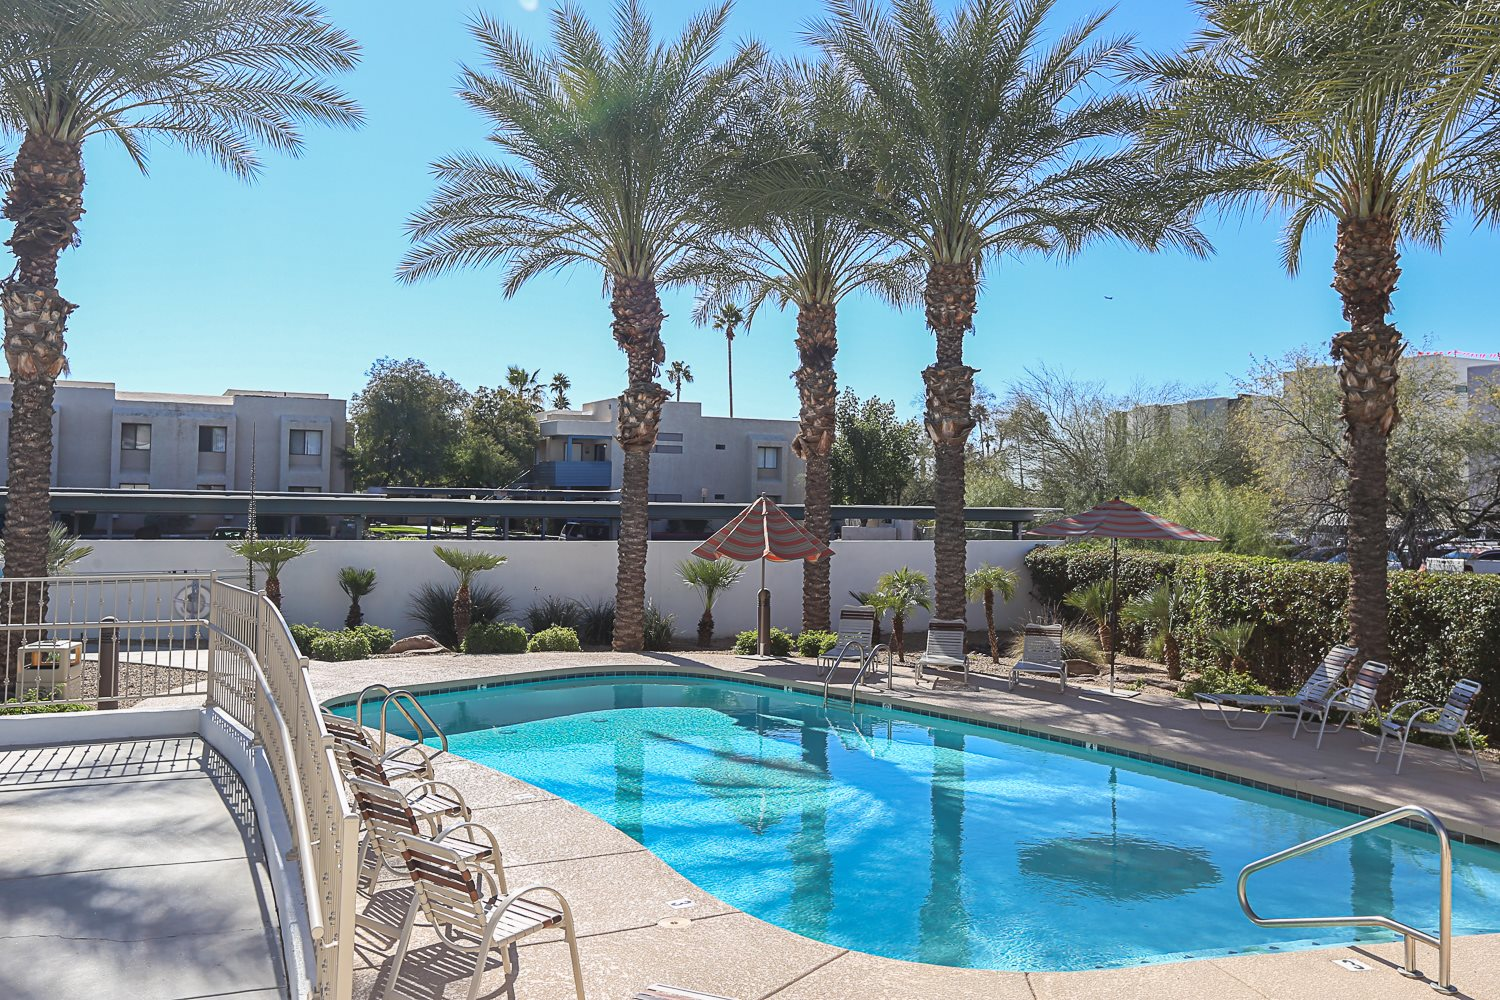 pool, pool patio at Villa Contento Apartments in Scottsdale, AZ